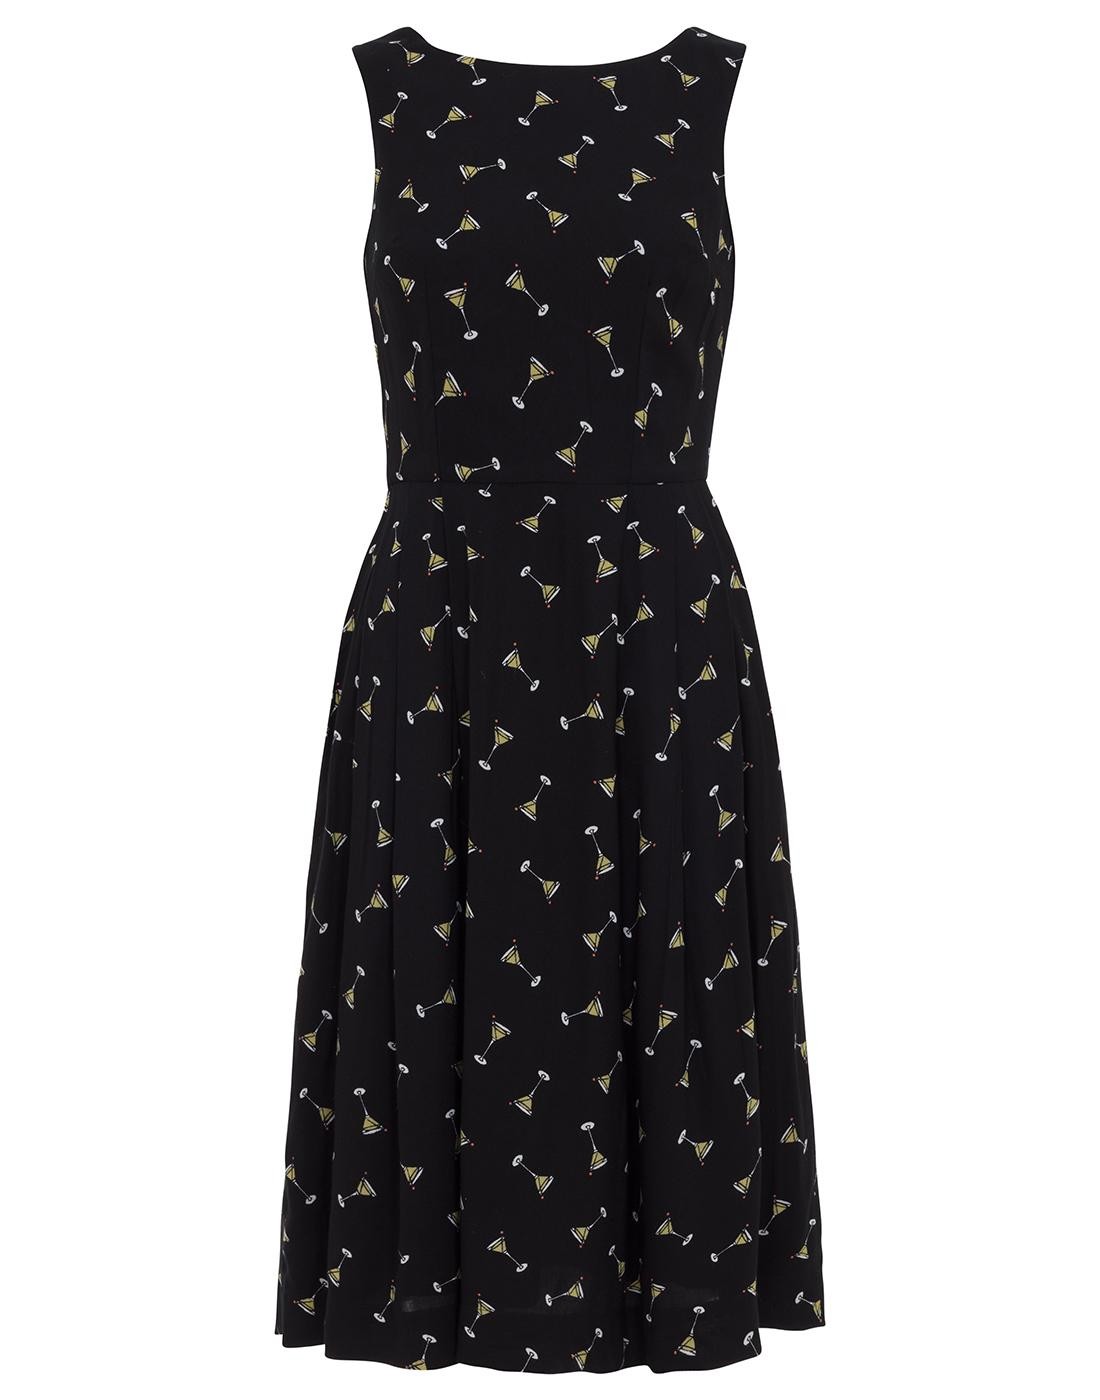 Penny EMILY AND FIN Retro 50s Cocktail Print Dress